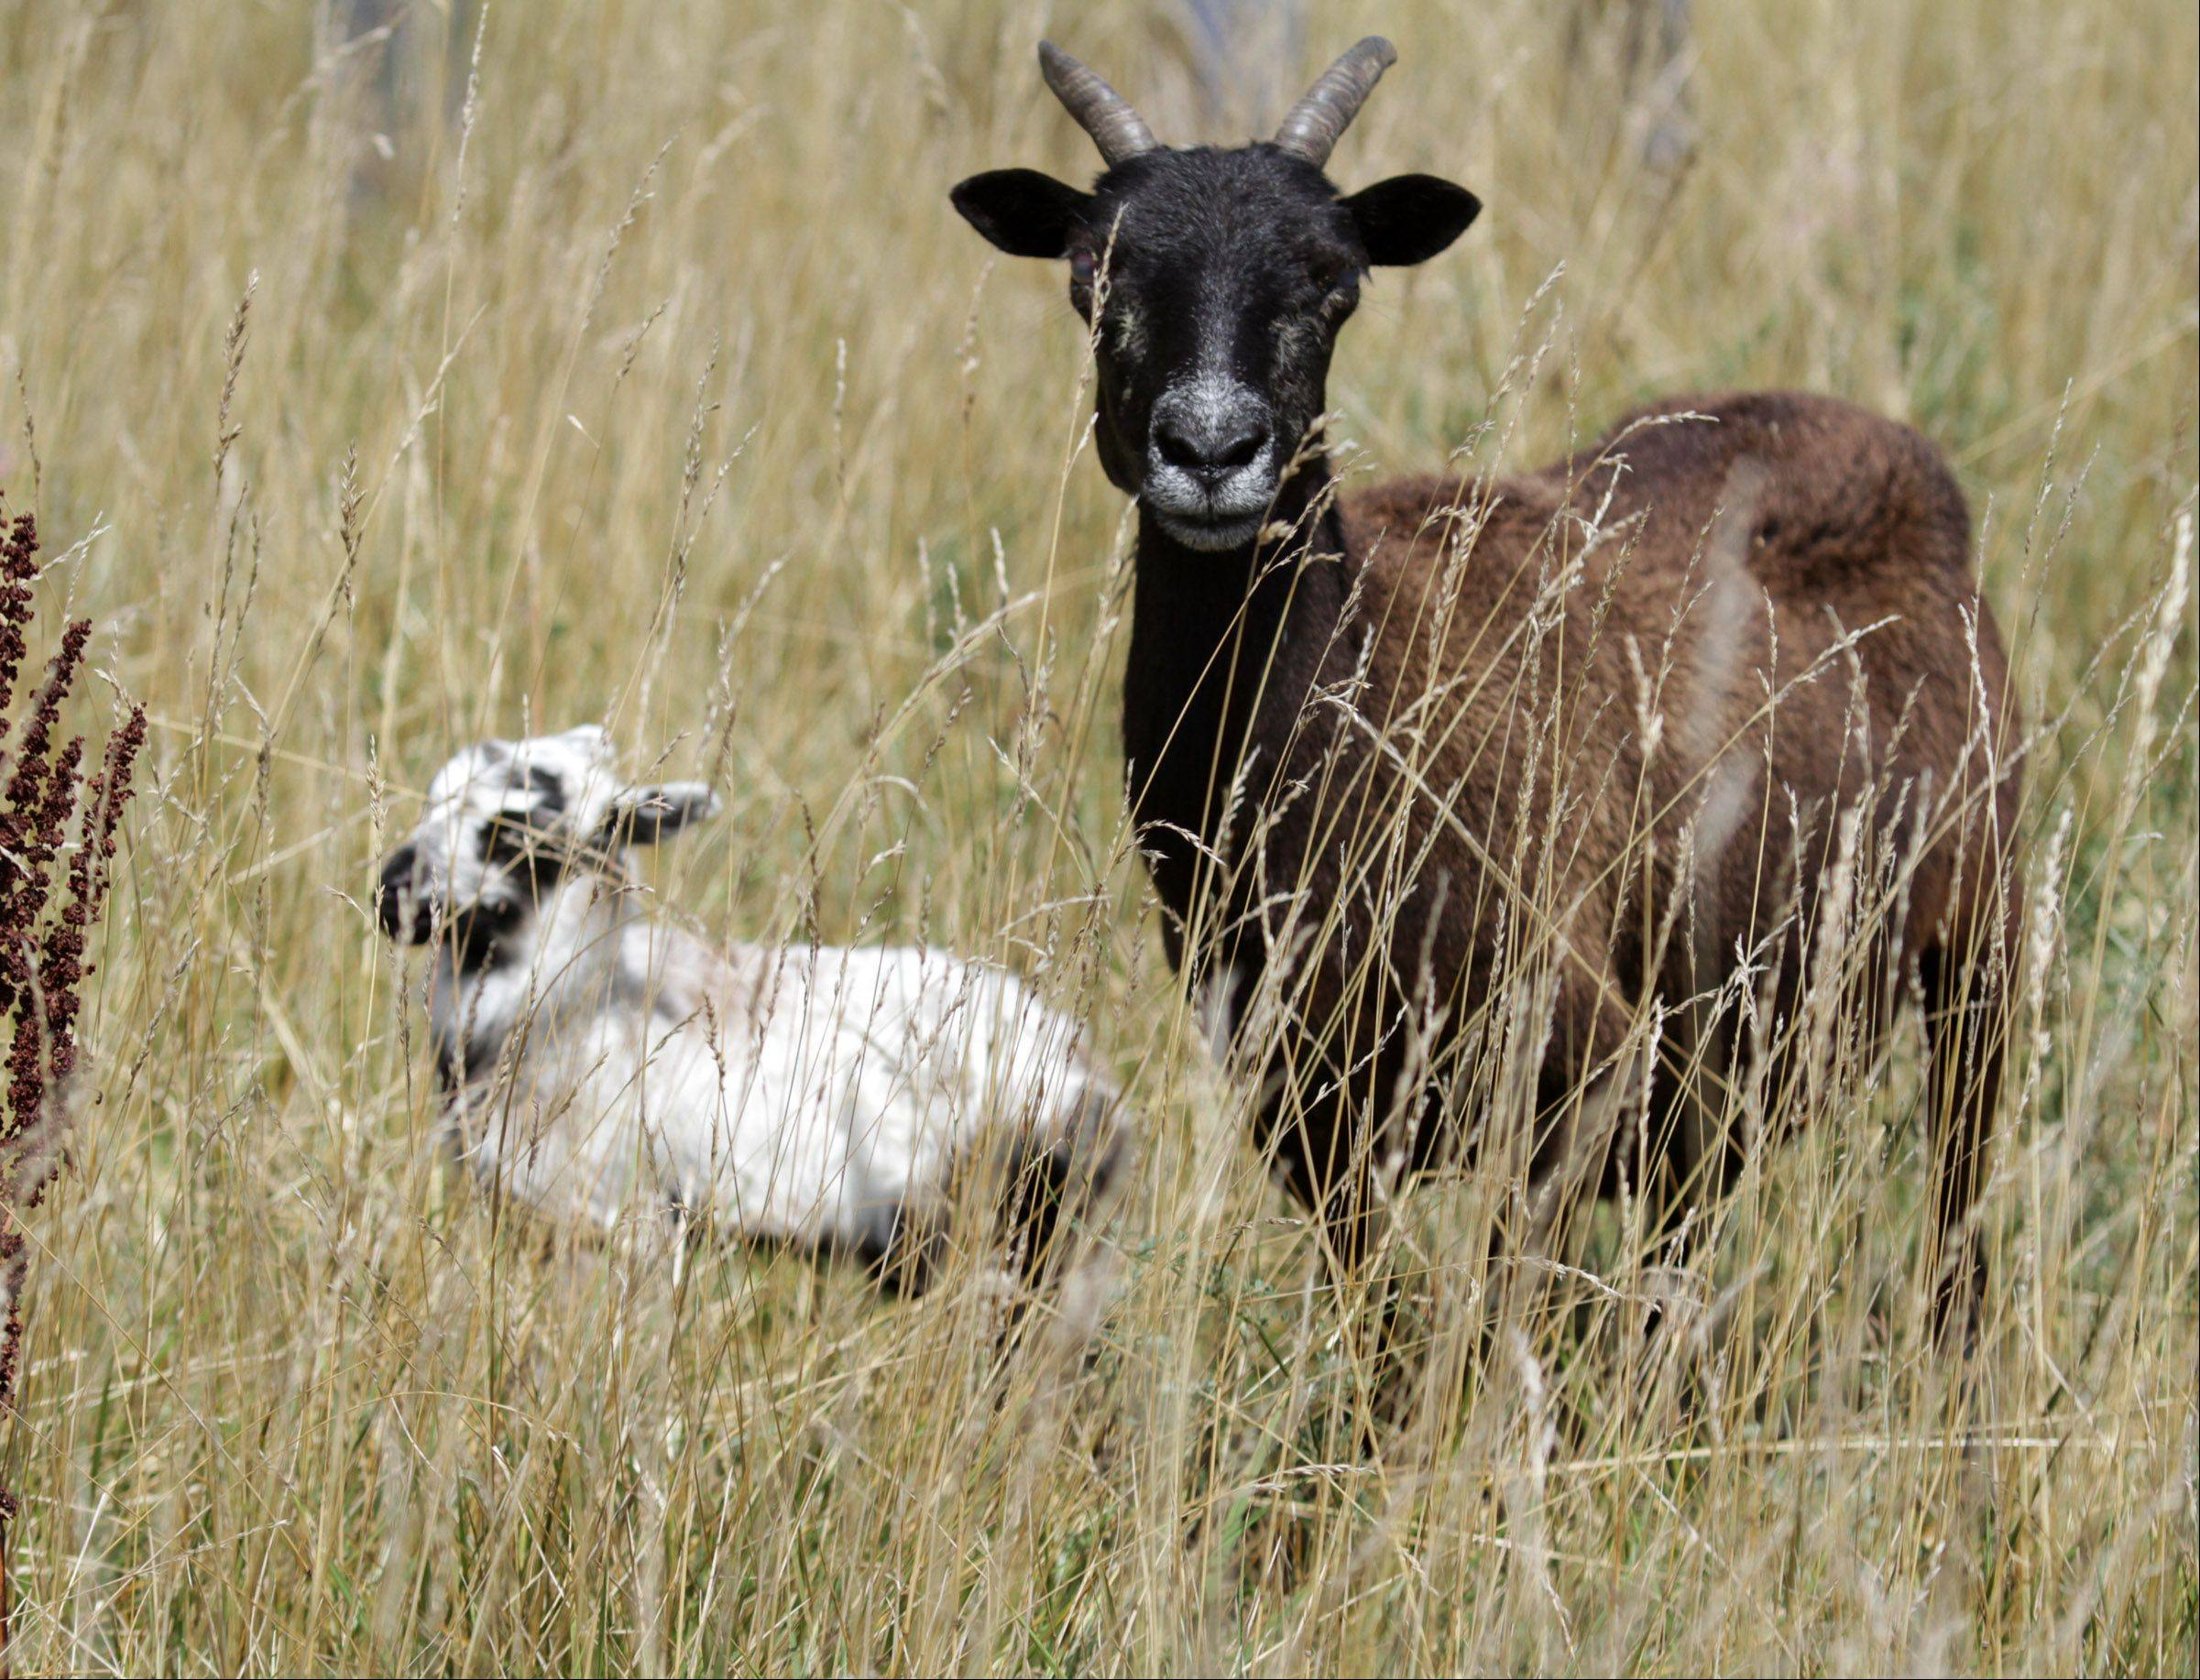 A newborn lamb dubbed O'Hare takes in his surroundings at the airport while a goat stands watch. The animals are part of a herd that grazes at O'Hare International Airport.